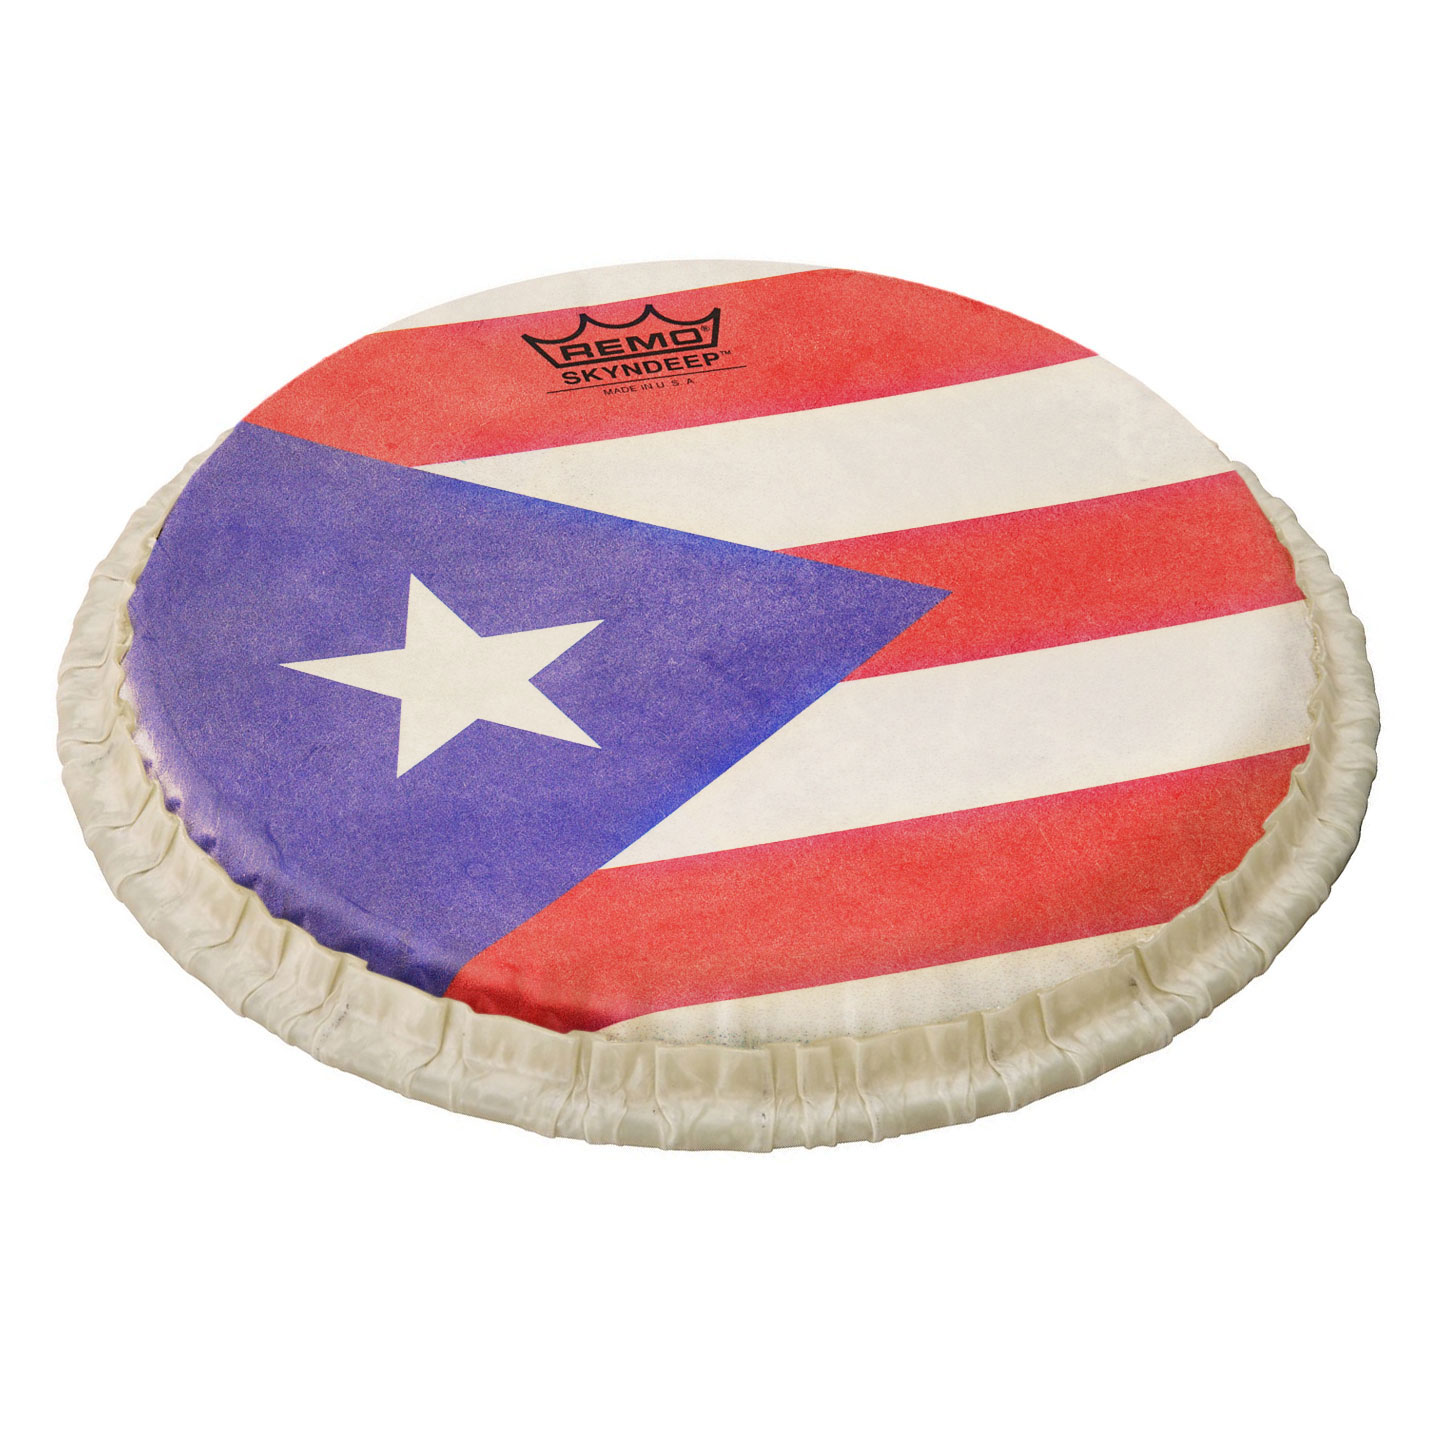 "Remo 8.5"" R-Series Skyndeep Bongo Drum Head with Puerto Rican Flag Graphic"